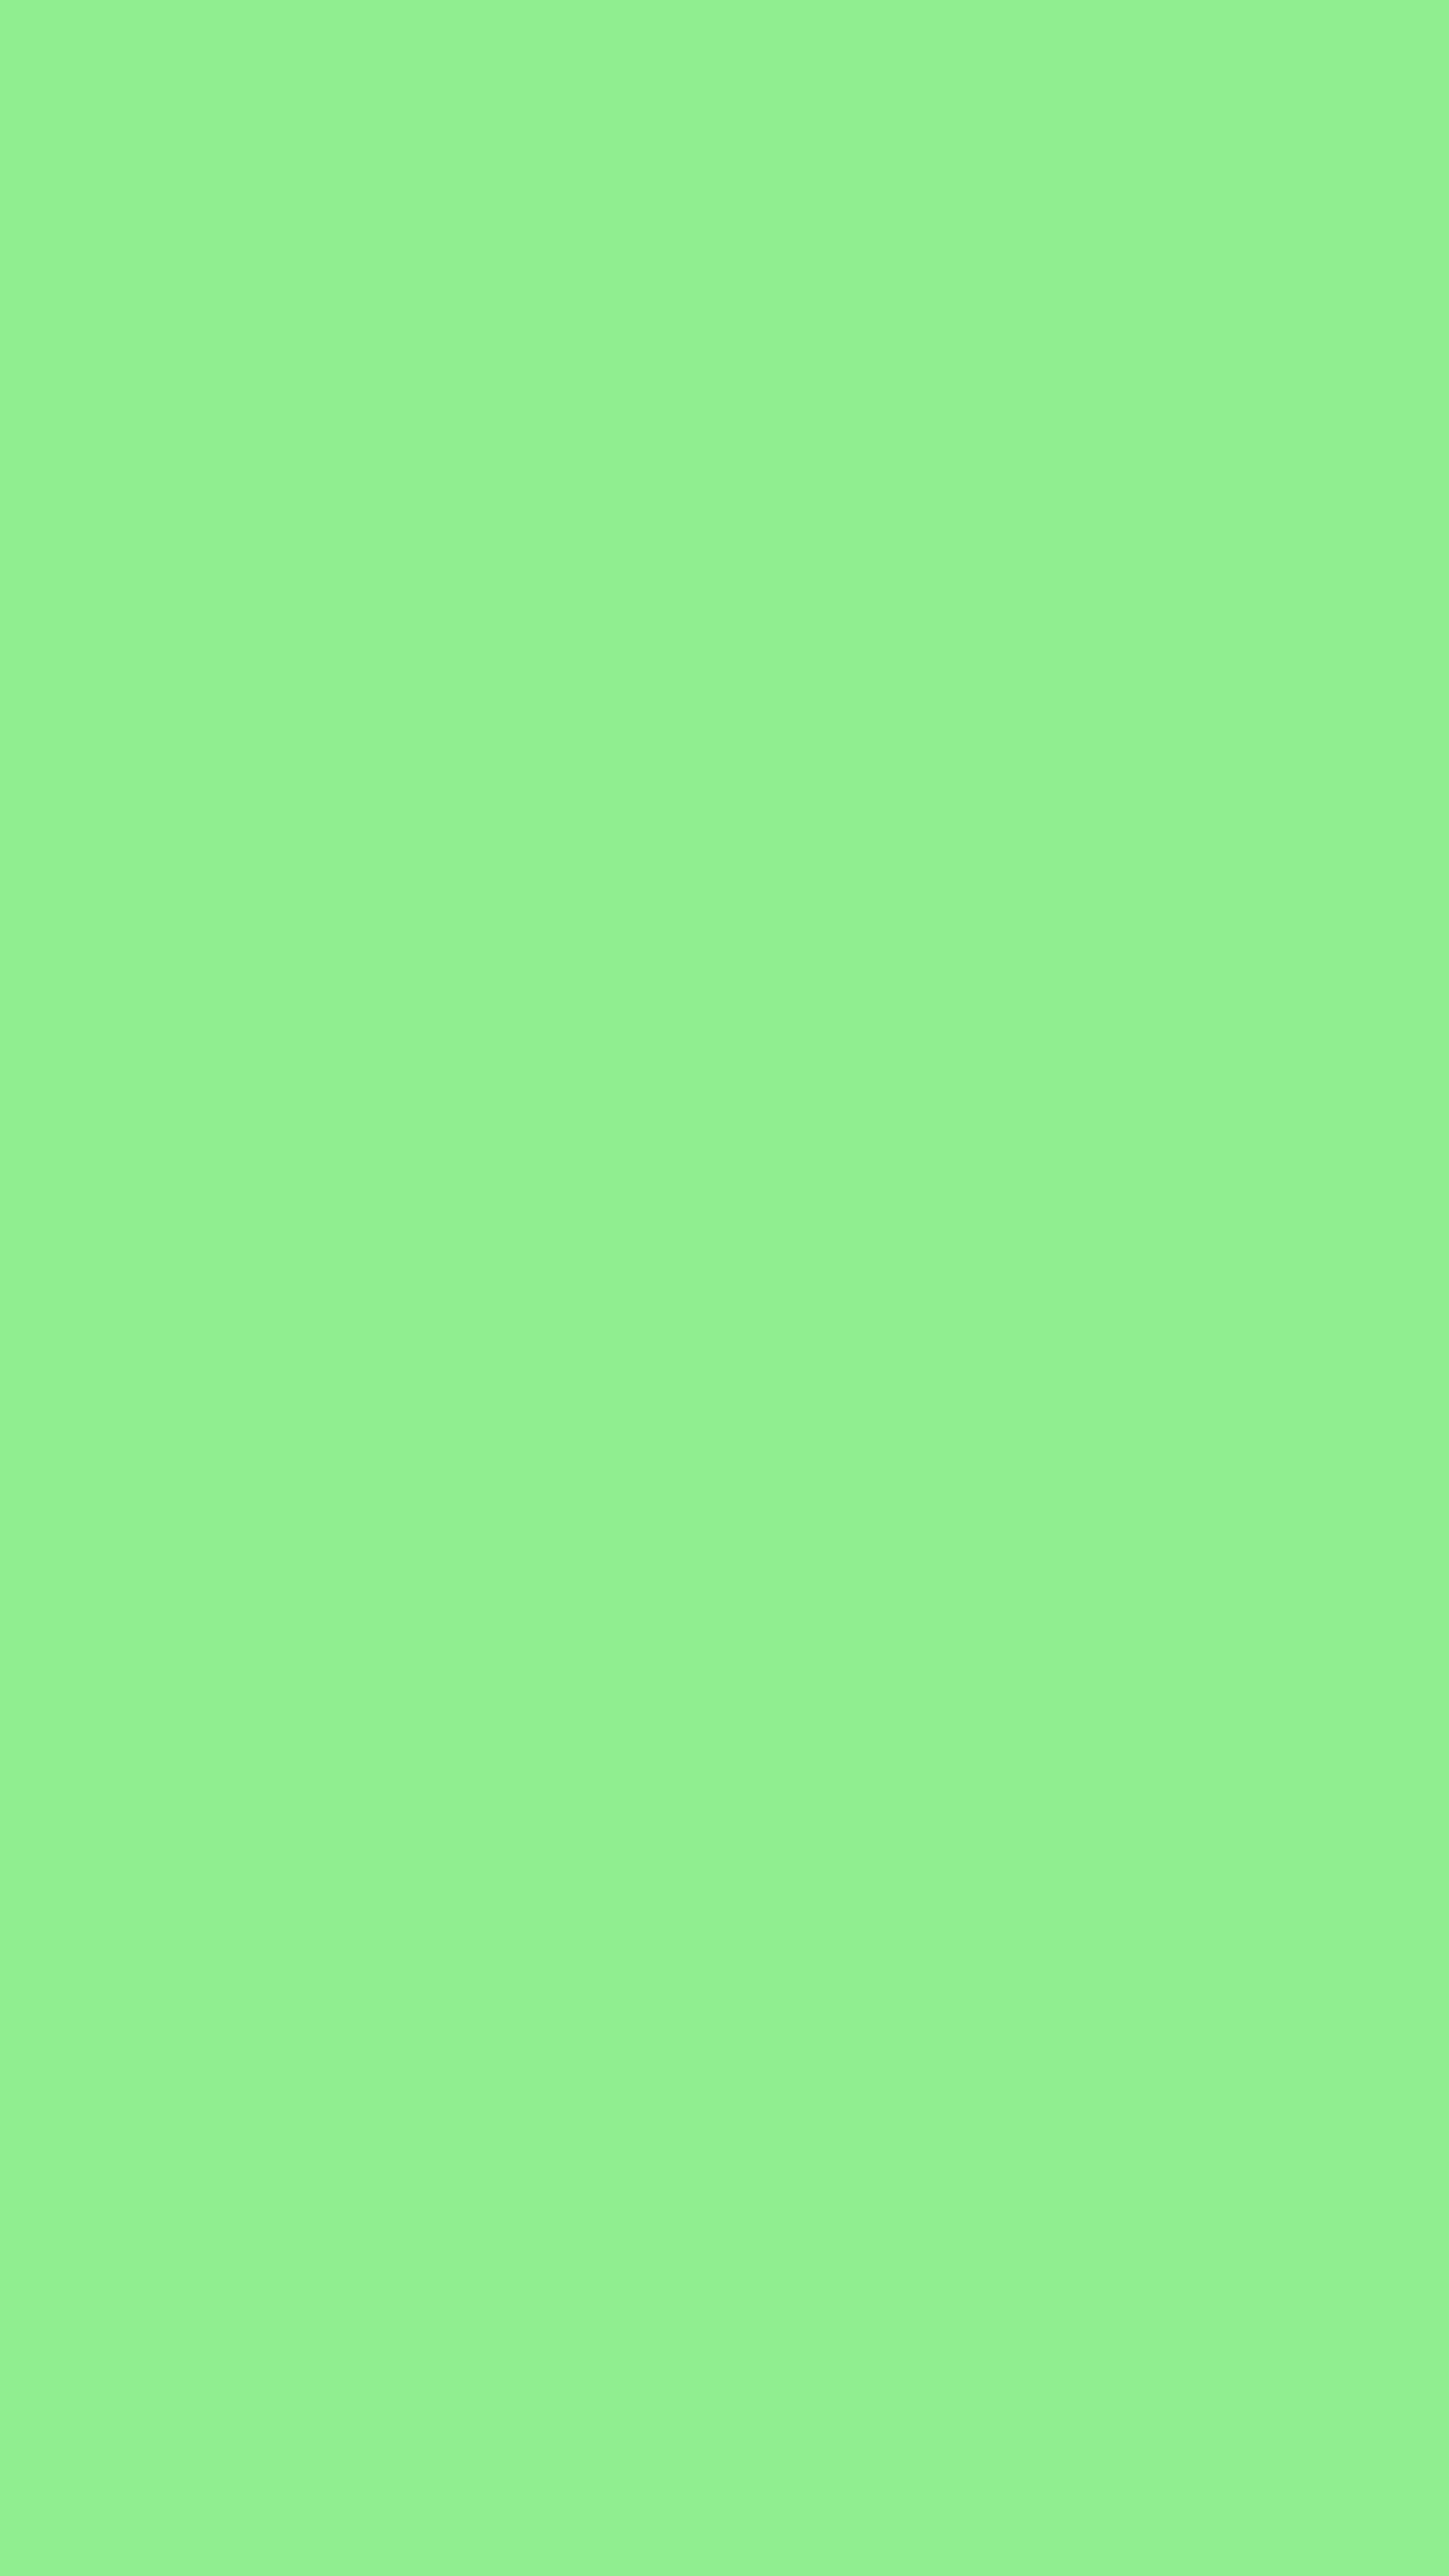 Light Green Solid Color Background Wallpaper For Mobile Phone